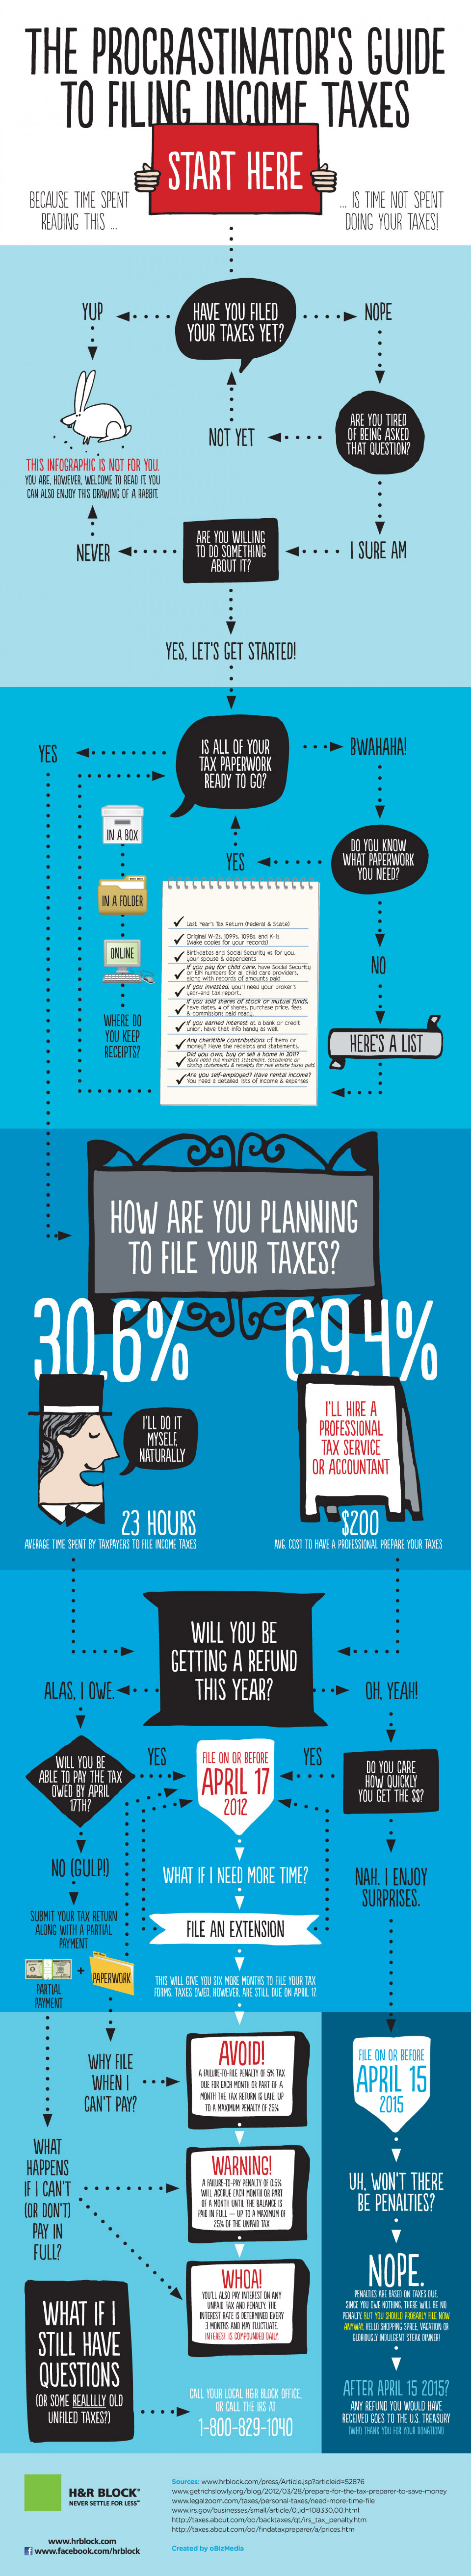 A Procrastinator's Guide To Filing Taxes  Infographic